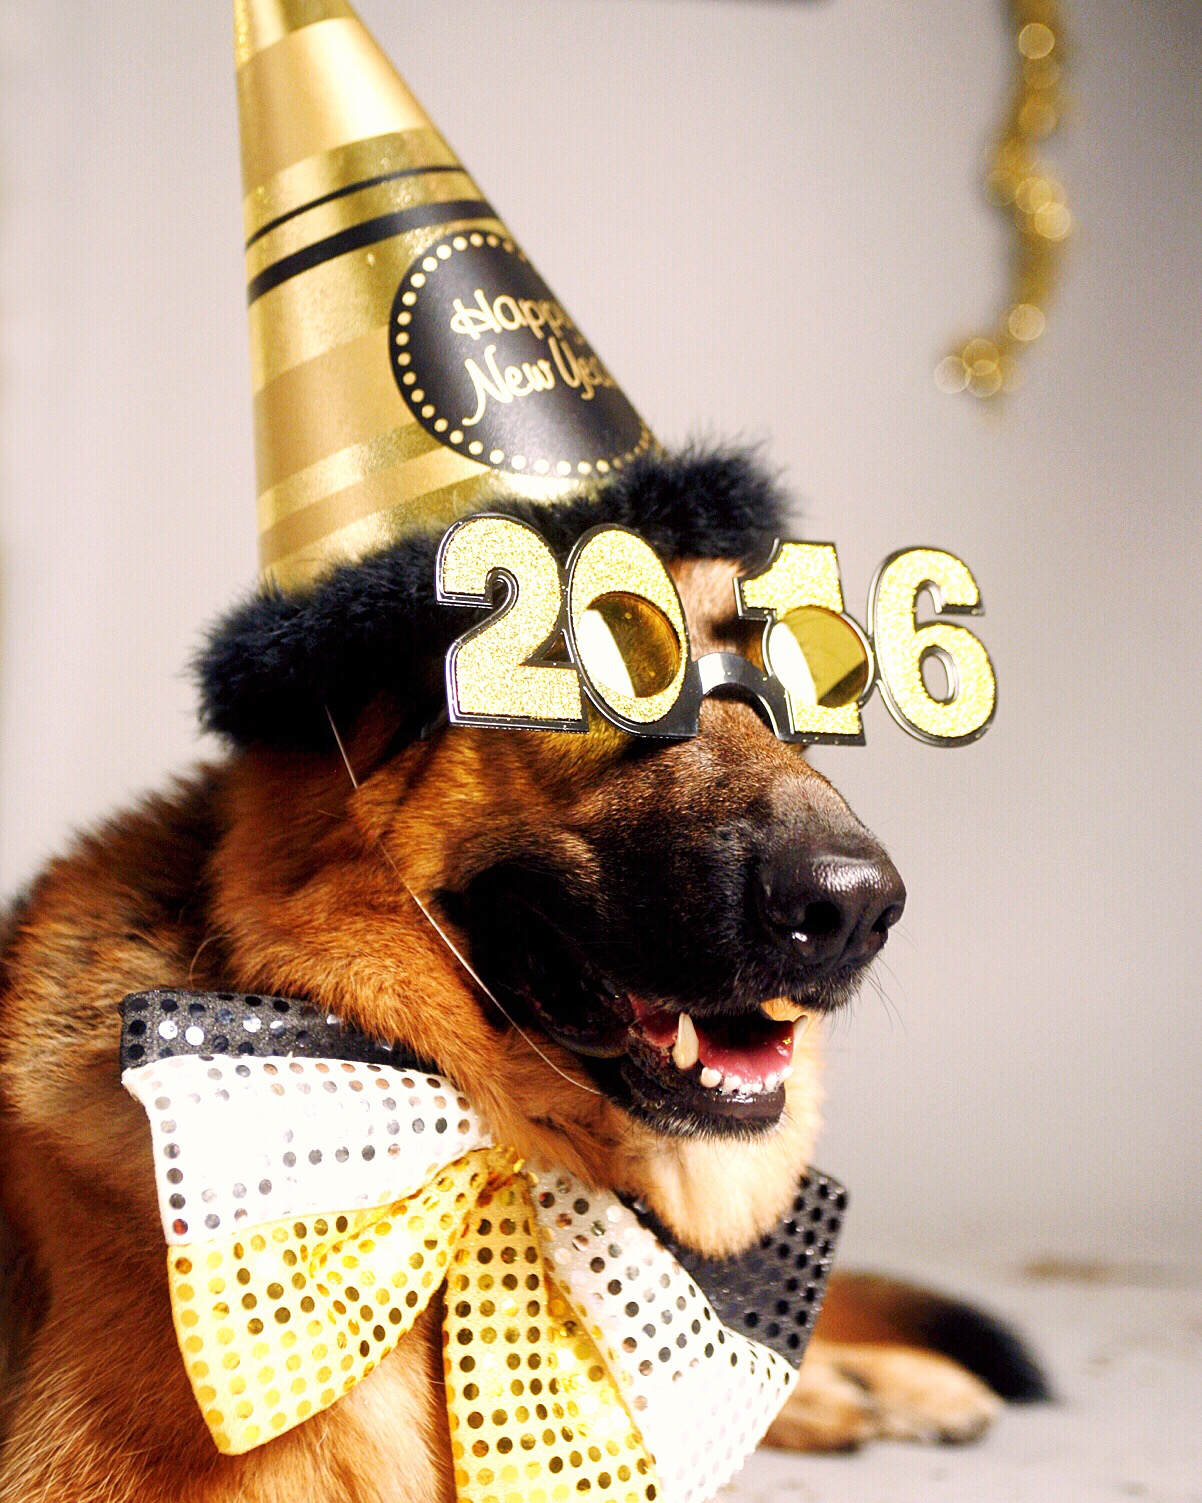 Happy New Year from MaQ!